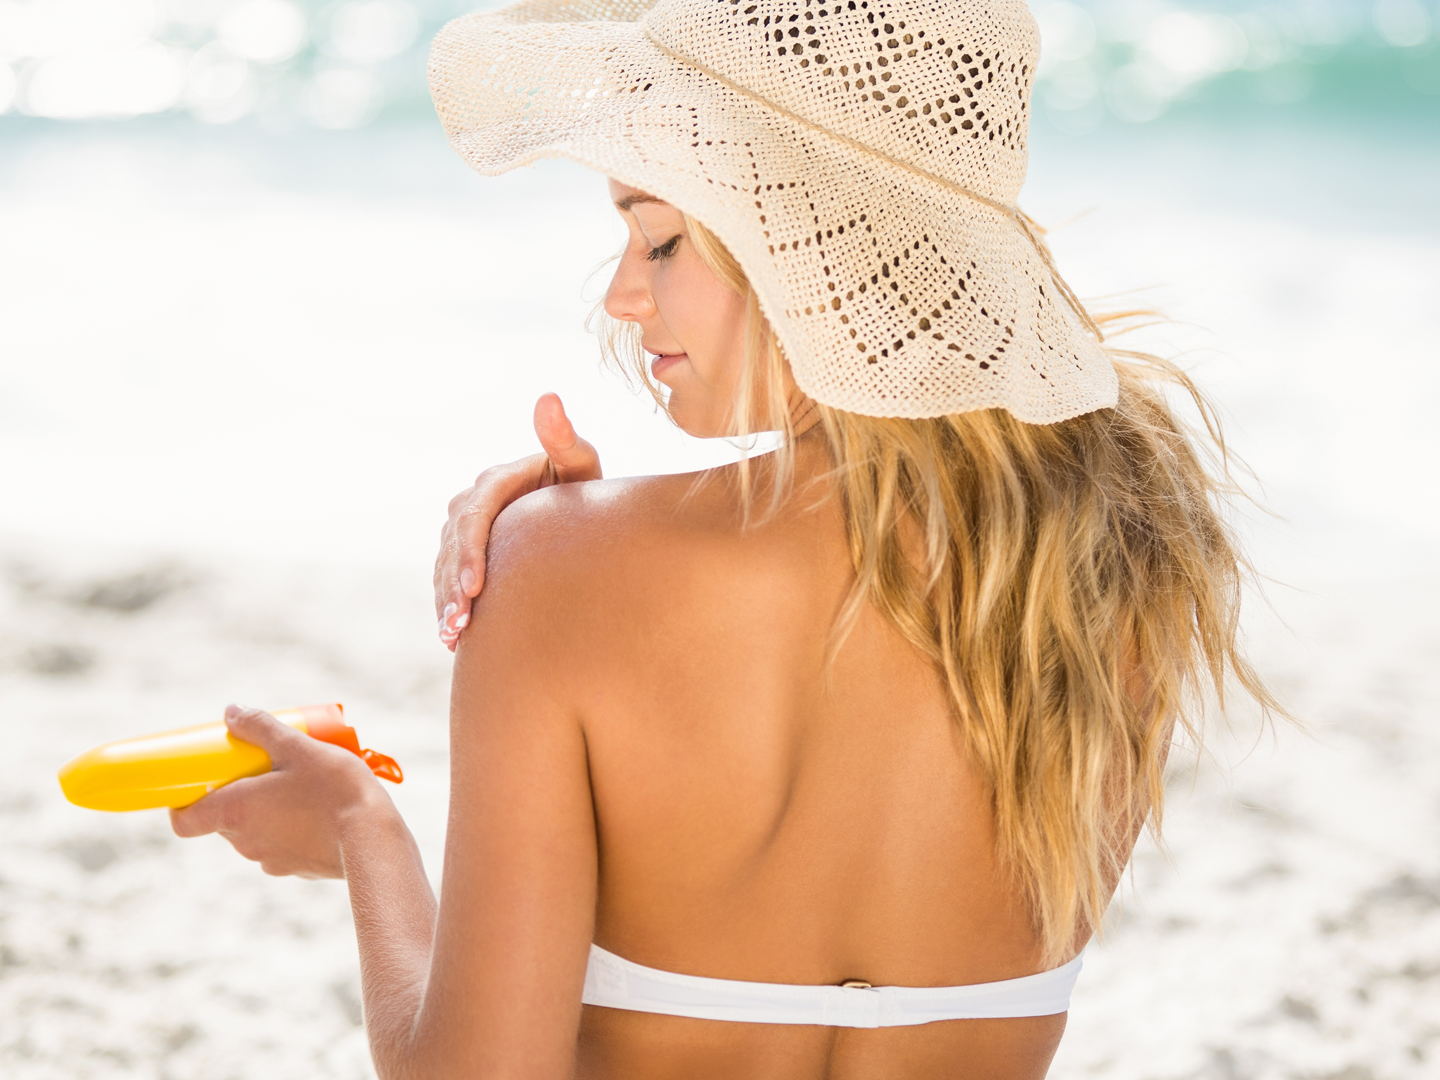 How to apply a reef safe sunscreen